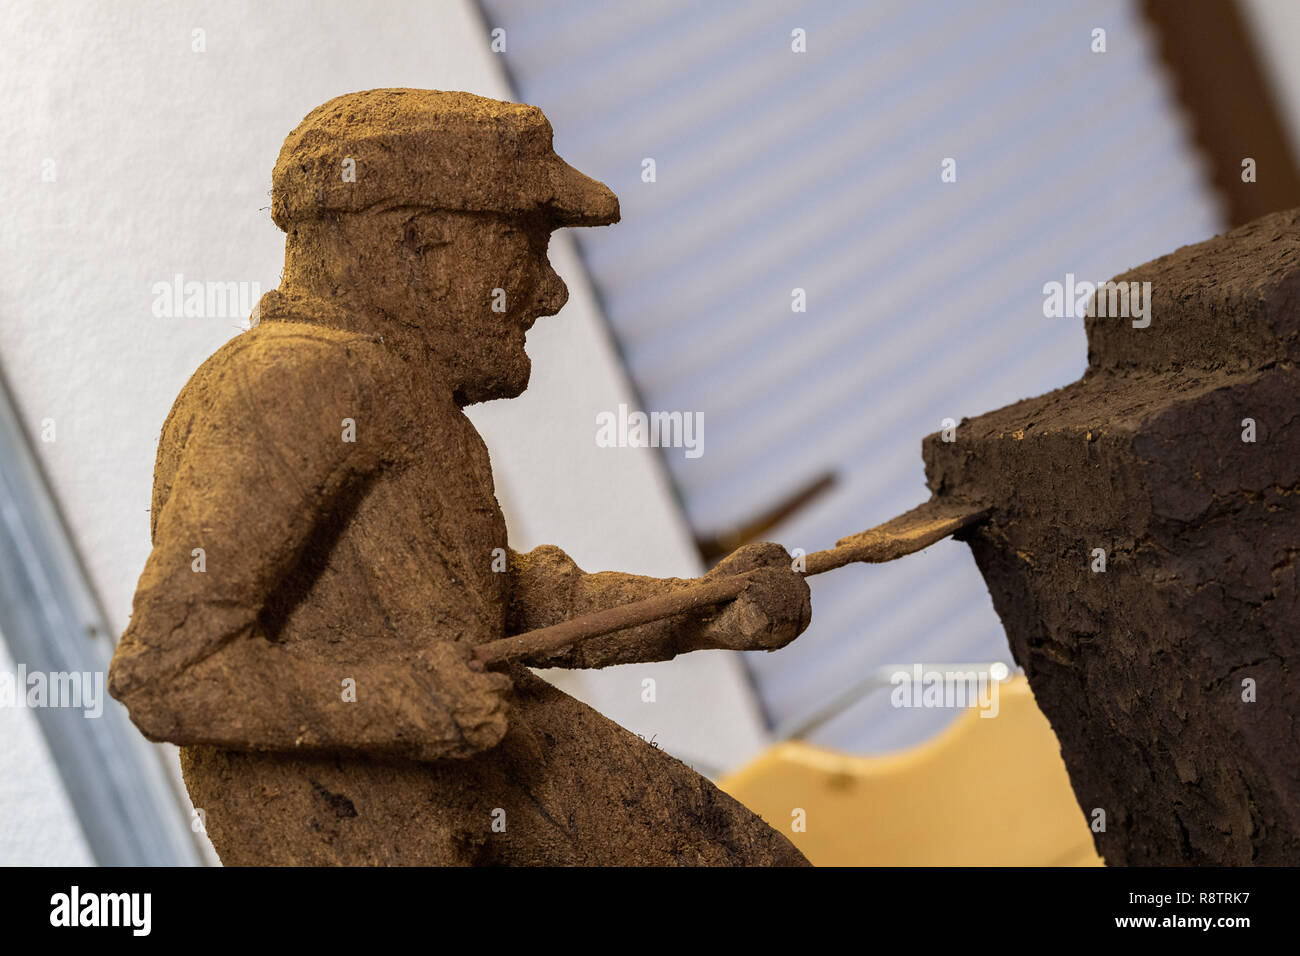 Saterland, Germany. 22nd Nov, 2018. A figure carved from peat by Karl-Heinz Brinkmann. The 64 year old Saterland artist works with many materials. But the dried white peat is special: it is 2000 years old. Credit: Mohssen Assanimoghaddam/dpa/Alamy Live News - Stock Image